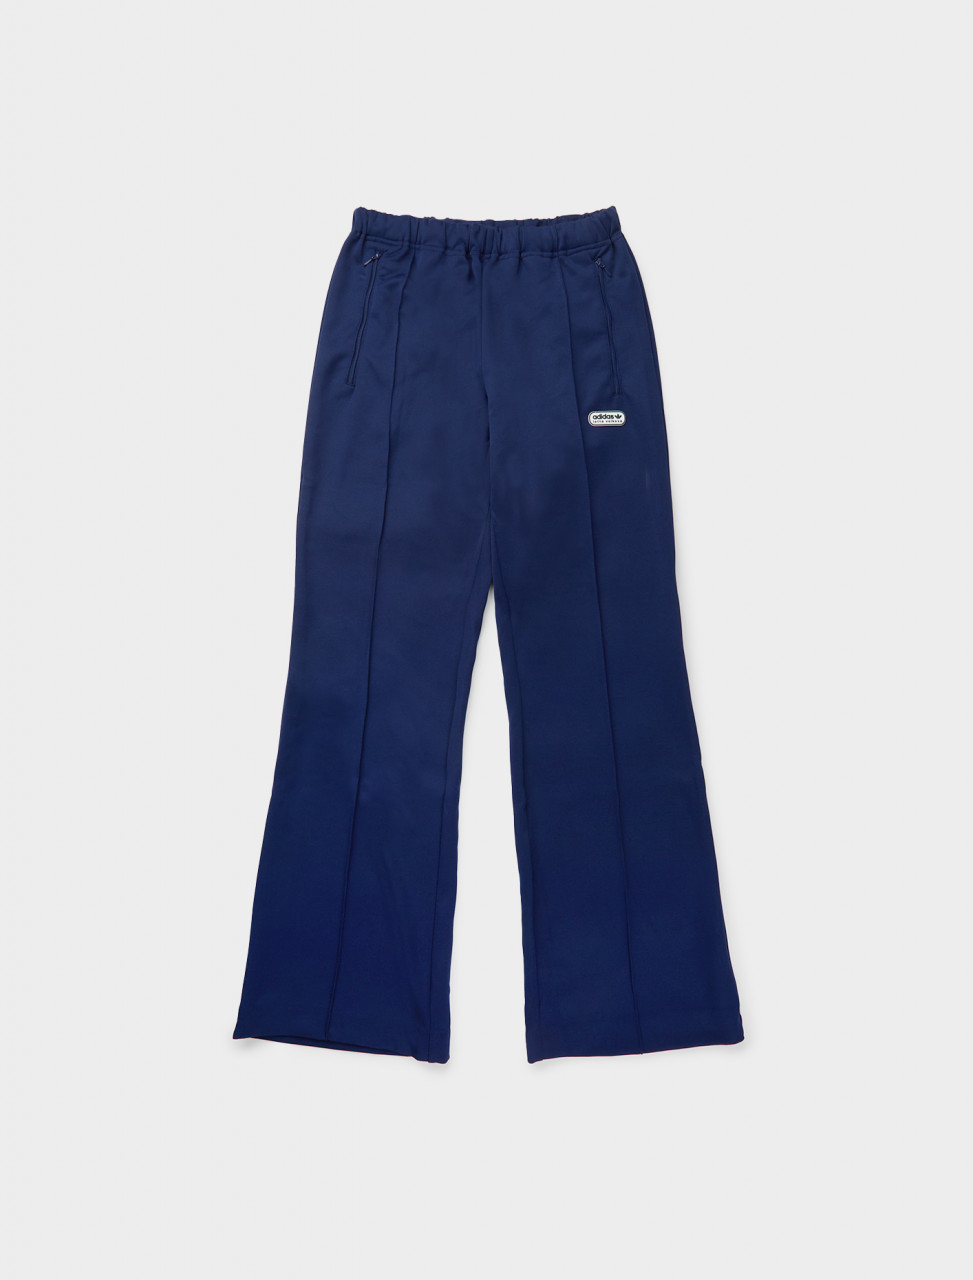 105-FT5871 ADIDAS LOTTA VOLKOVA PODIUM TP PANTS NGTSKY